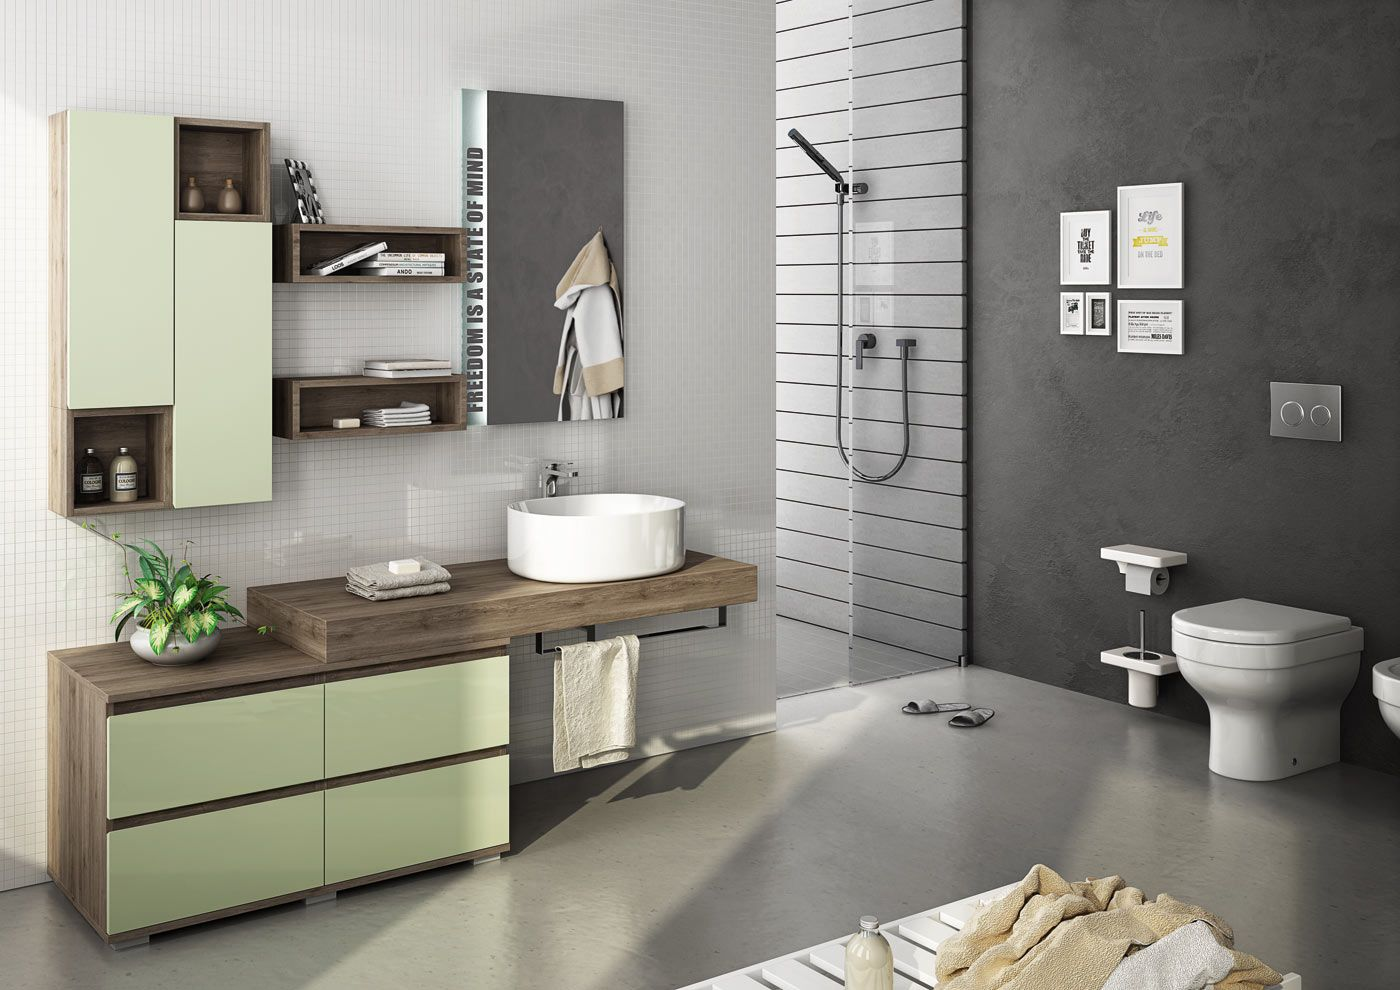 Sectional single wall-mounted vanity unit FREEDOM 16 by LEGNOBAGNO ...